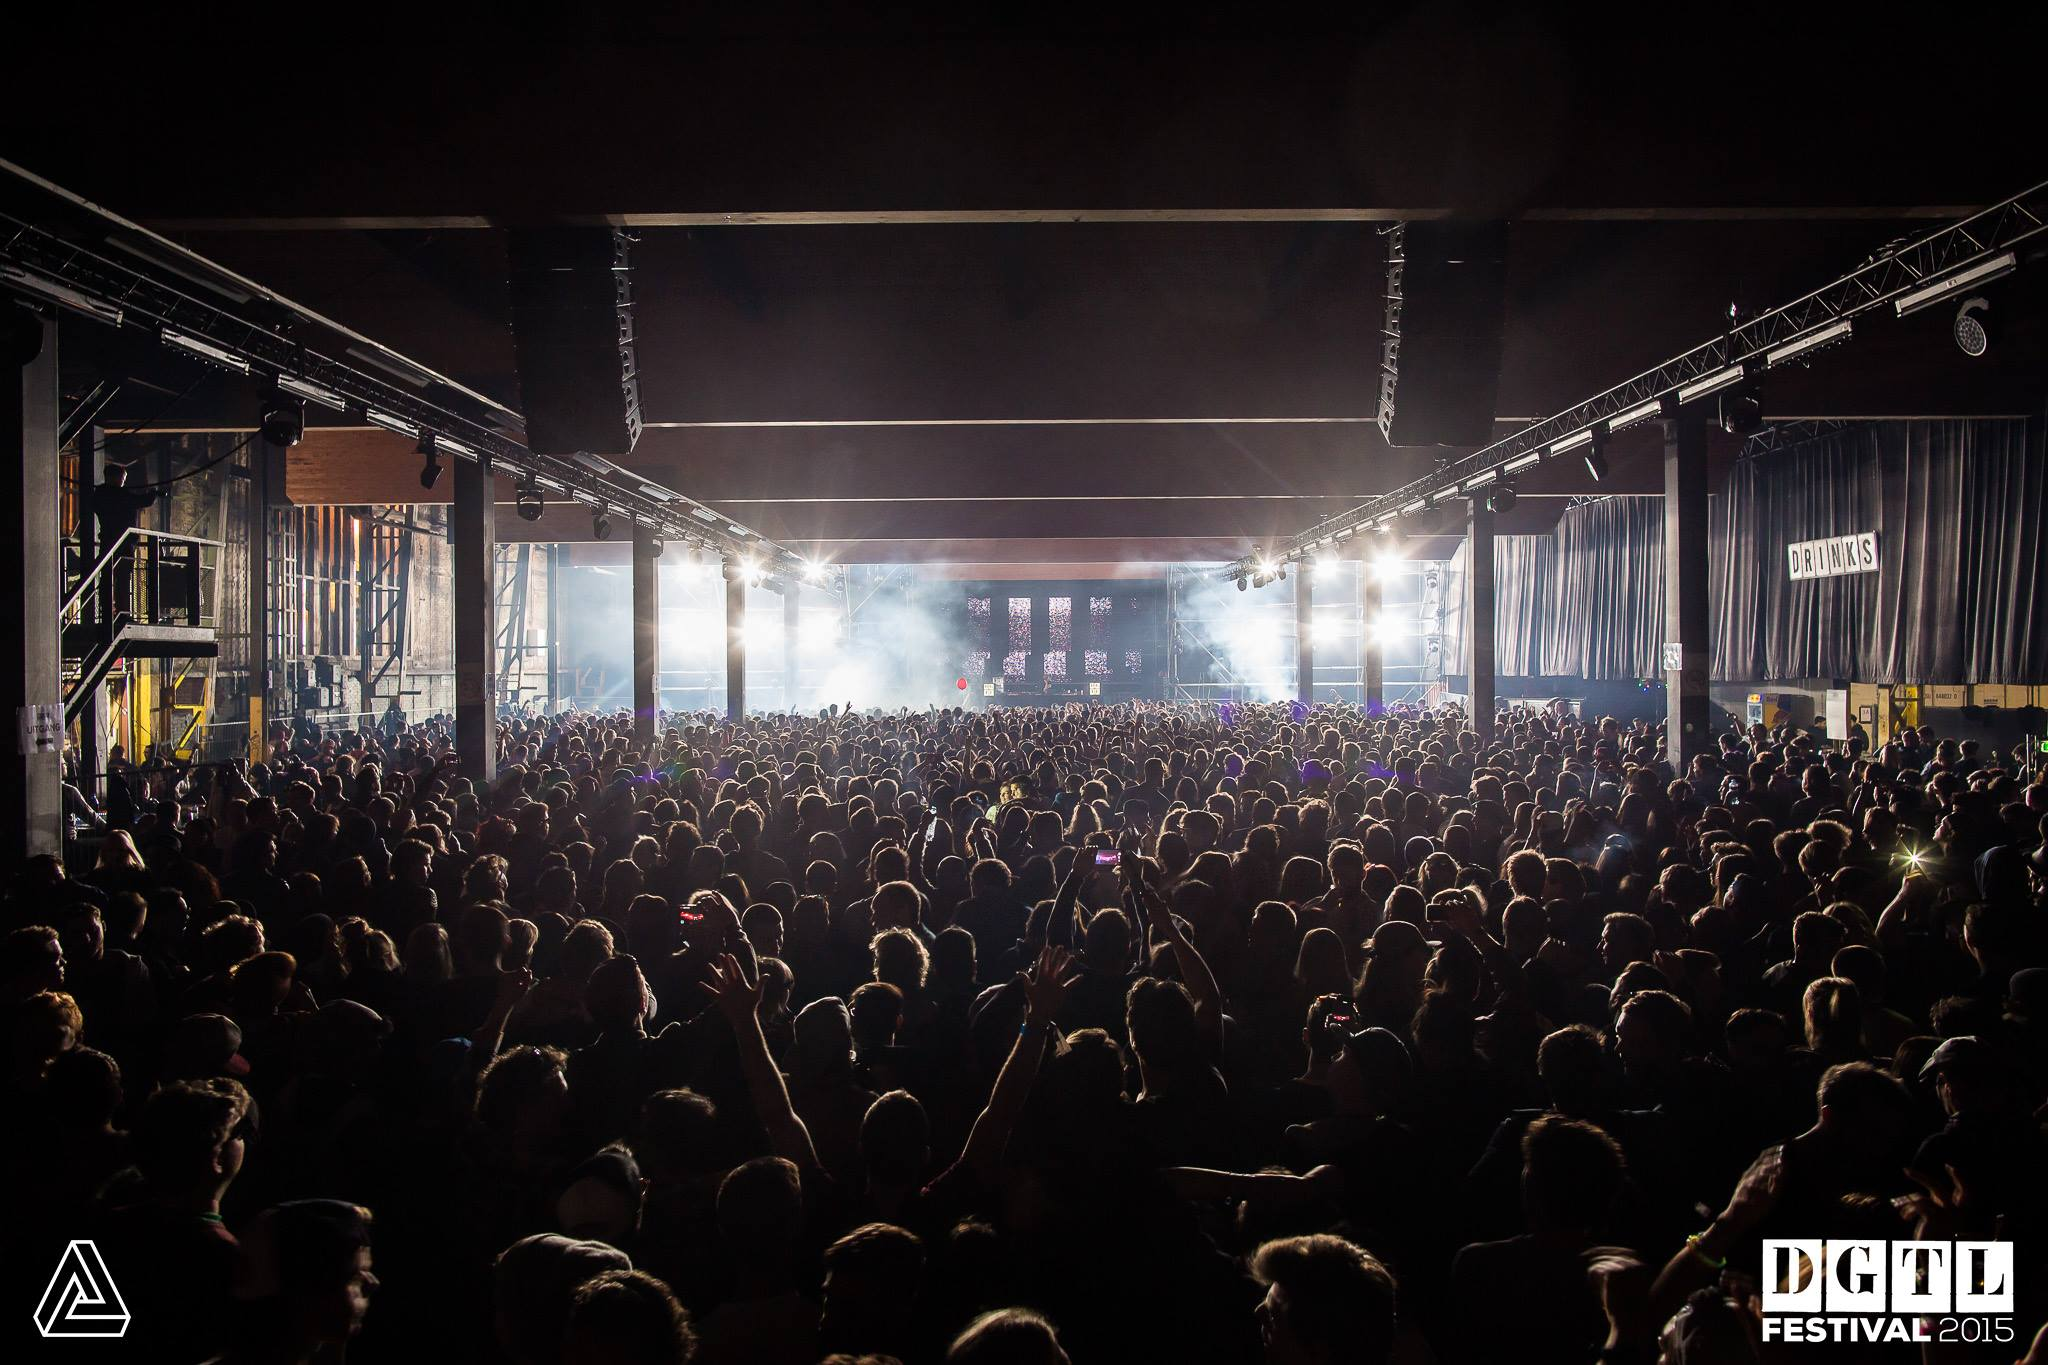 DGTL announces three nights at Amsterdam Dance Event